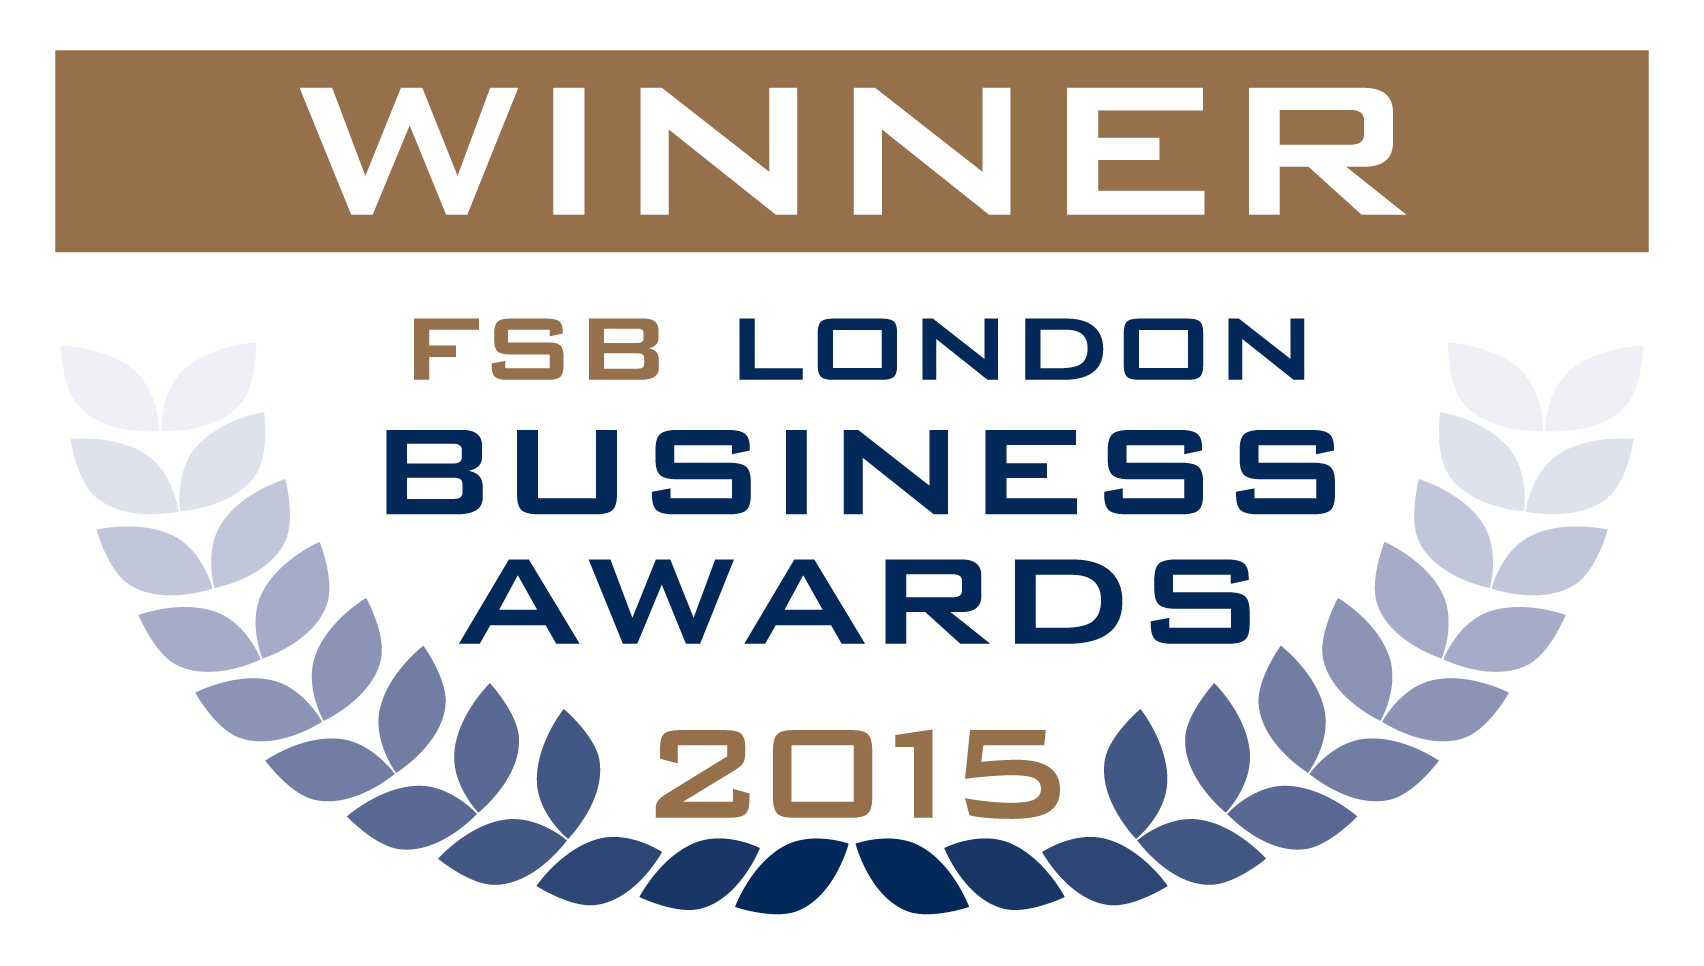 MuLondon Wins The Green Award at The FSB London Business Awards